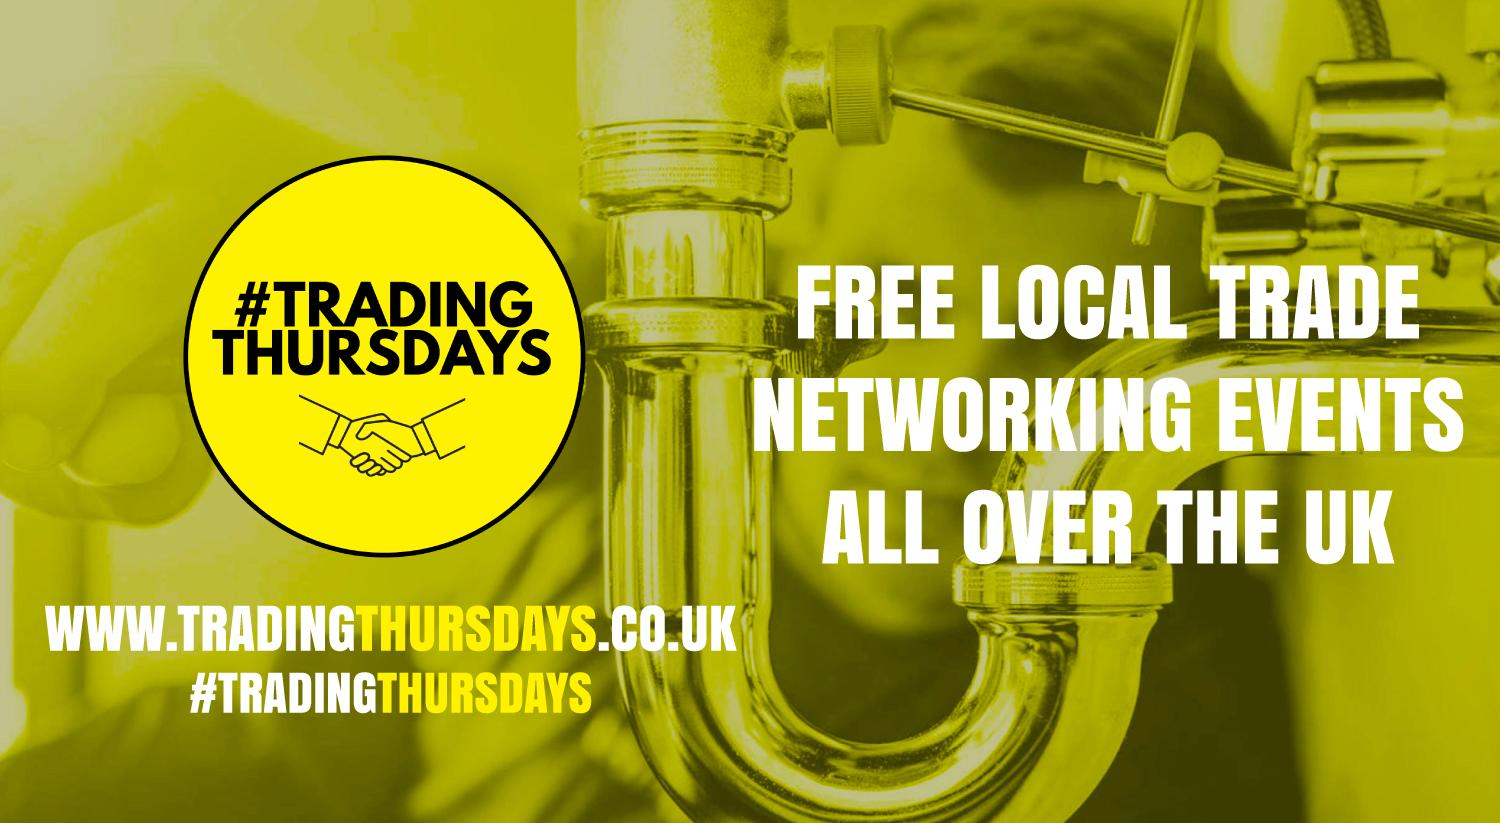 Trading Thursdays! Free networking event for traders in Stockton-on-Tees